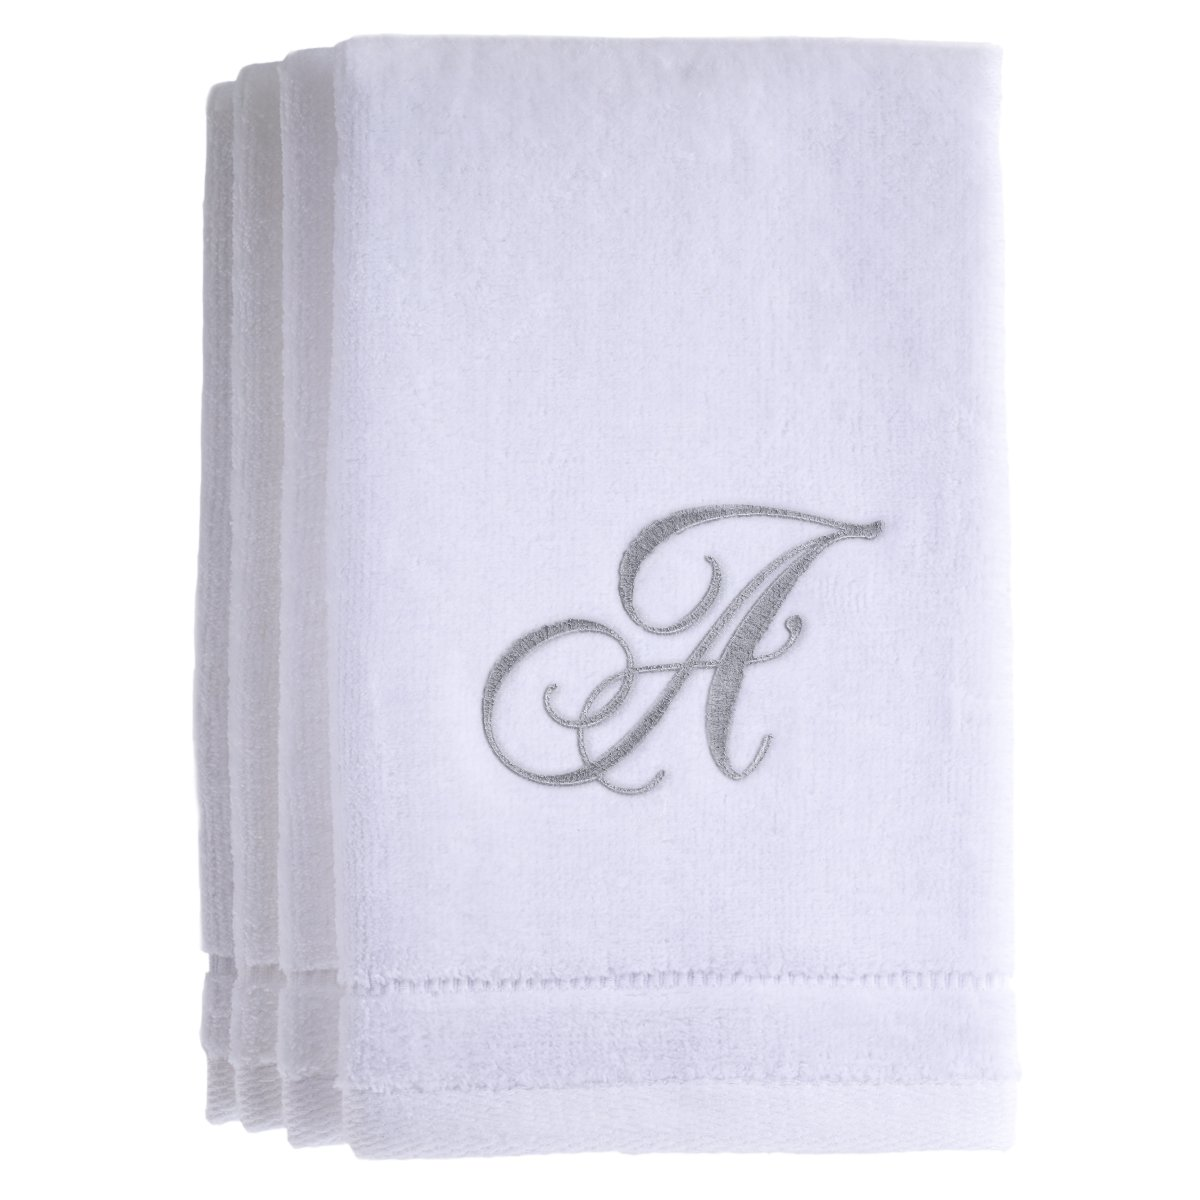 Monogrammed Towels Fingertip, Personalized Gift, 11 x 18 Inches - Set of 4- Silver Embroidered Towel - Extra Absorbent 100% Cotton- Soft Velour Finish - For Bathroom/ Kitchen/ Spa- Initial A (White) Creative Scents 8332-A